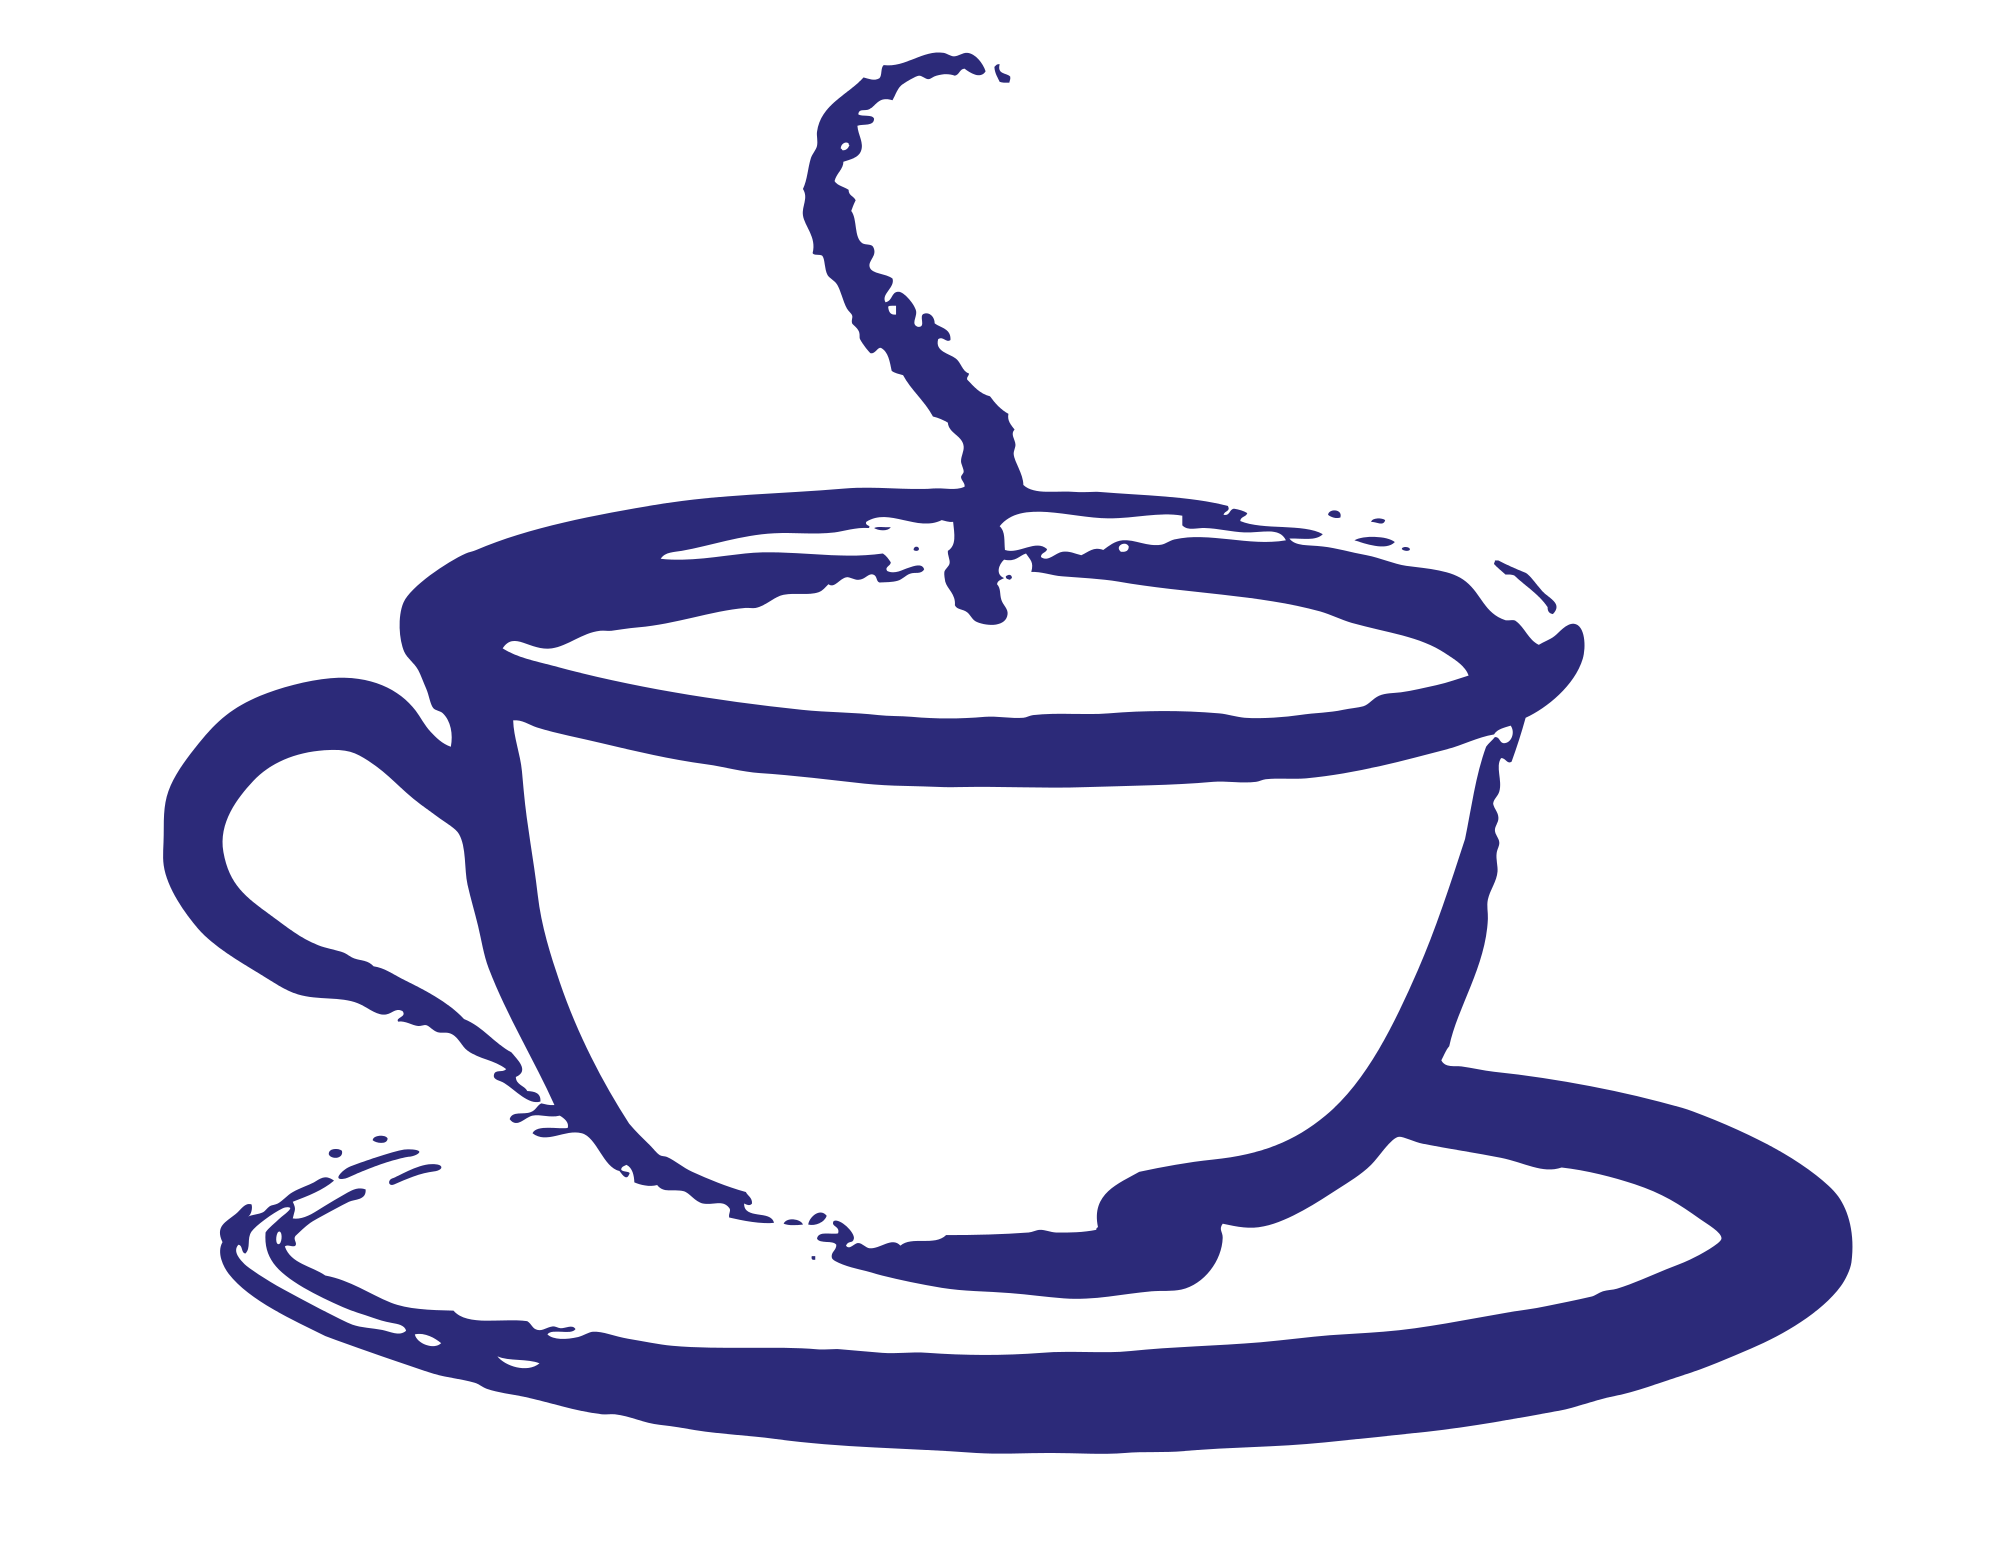 teacup svg transparent